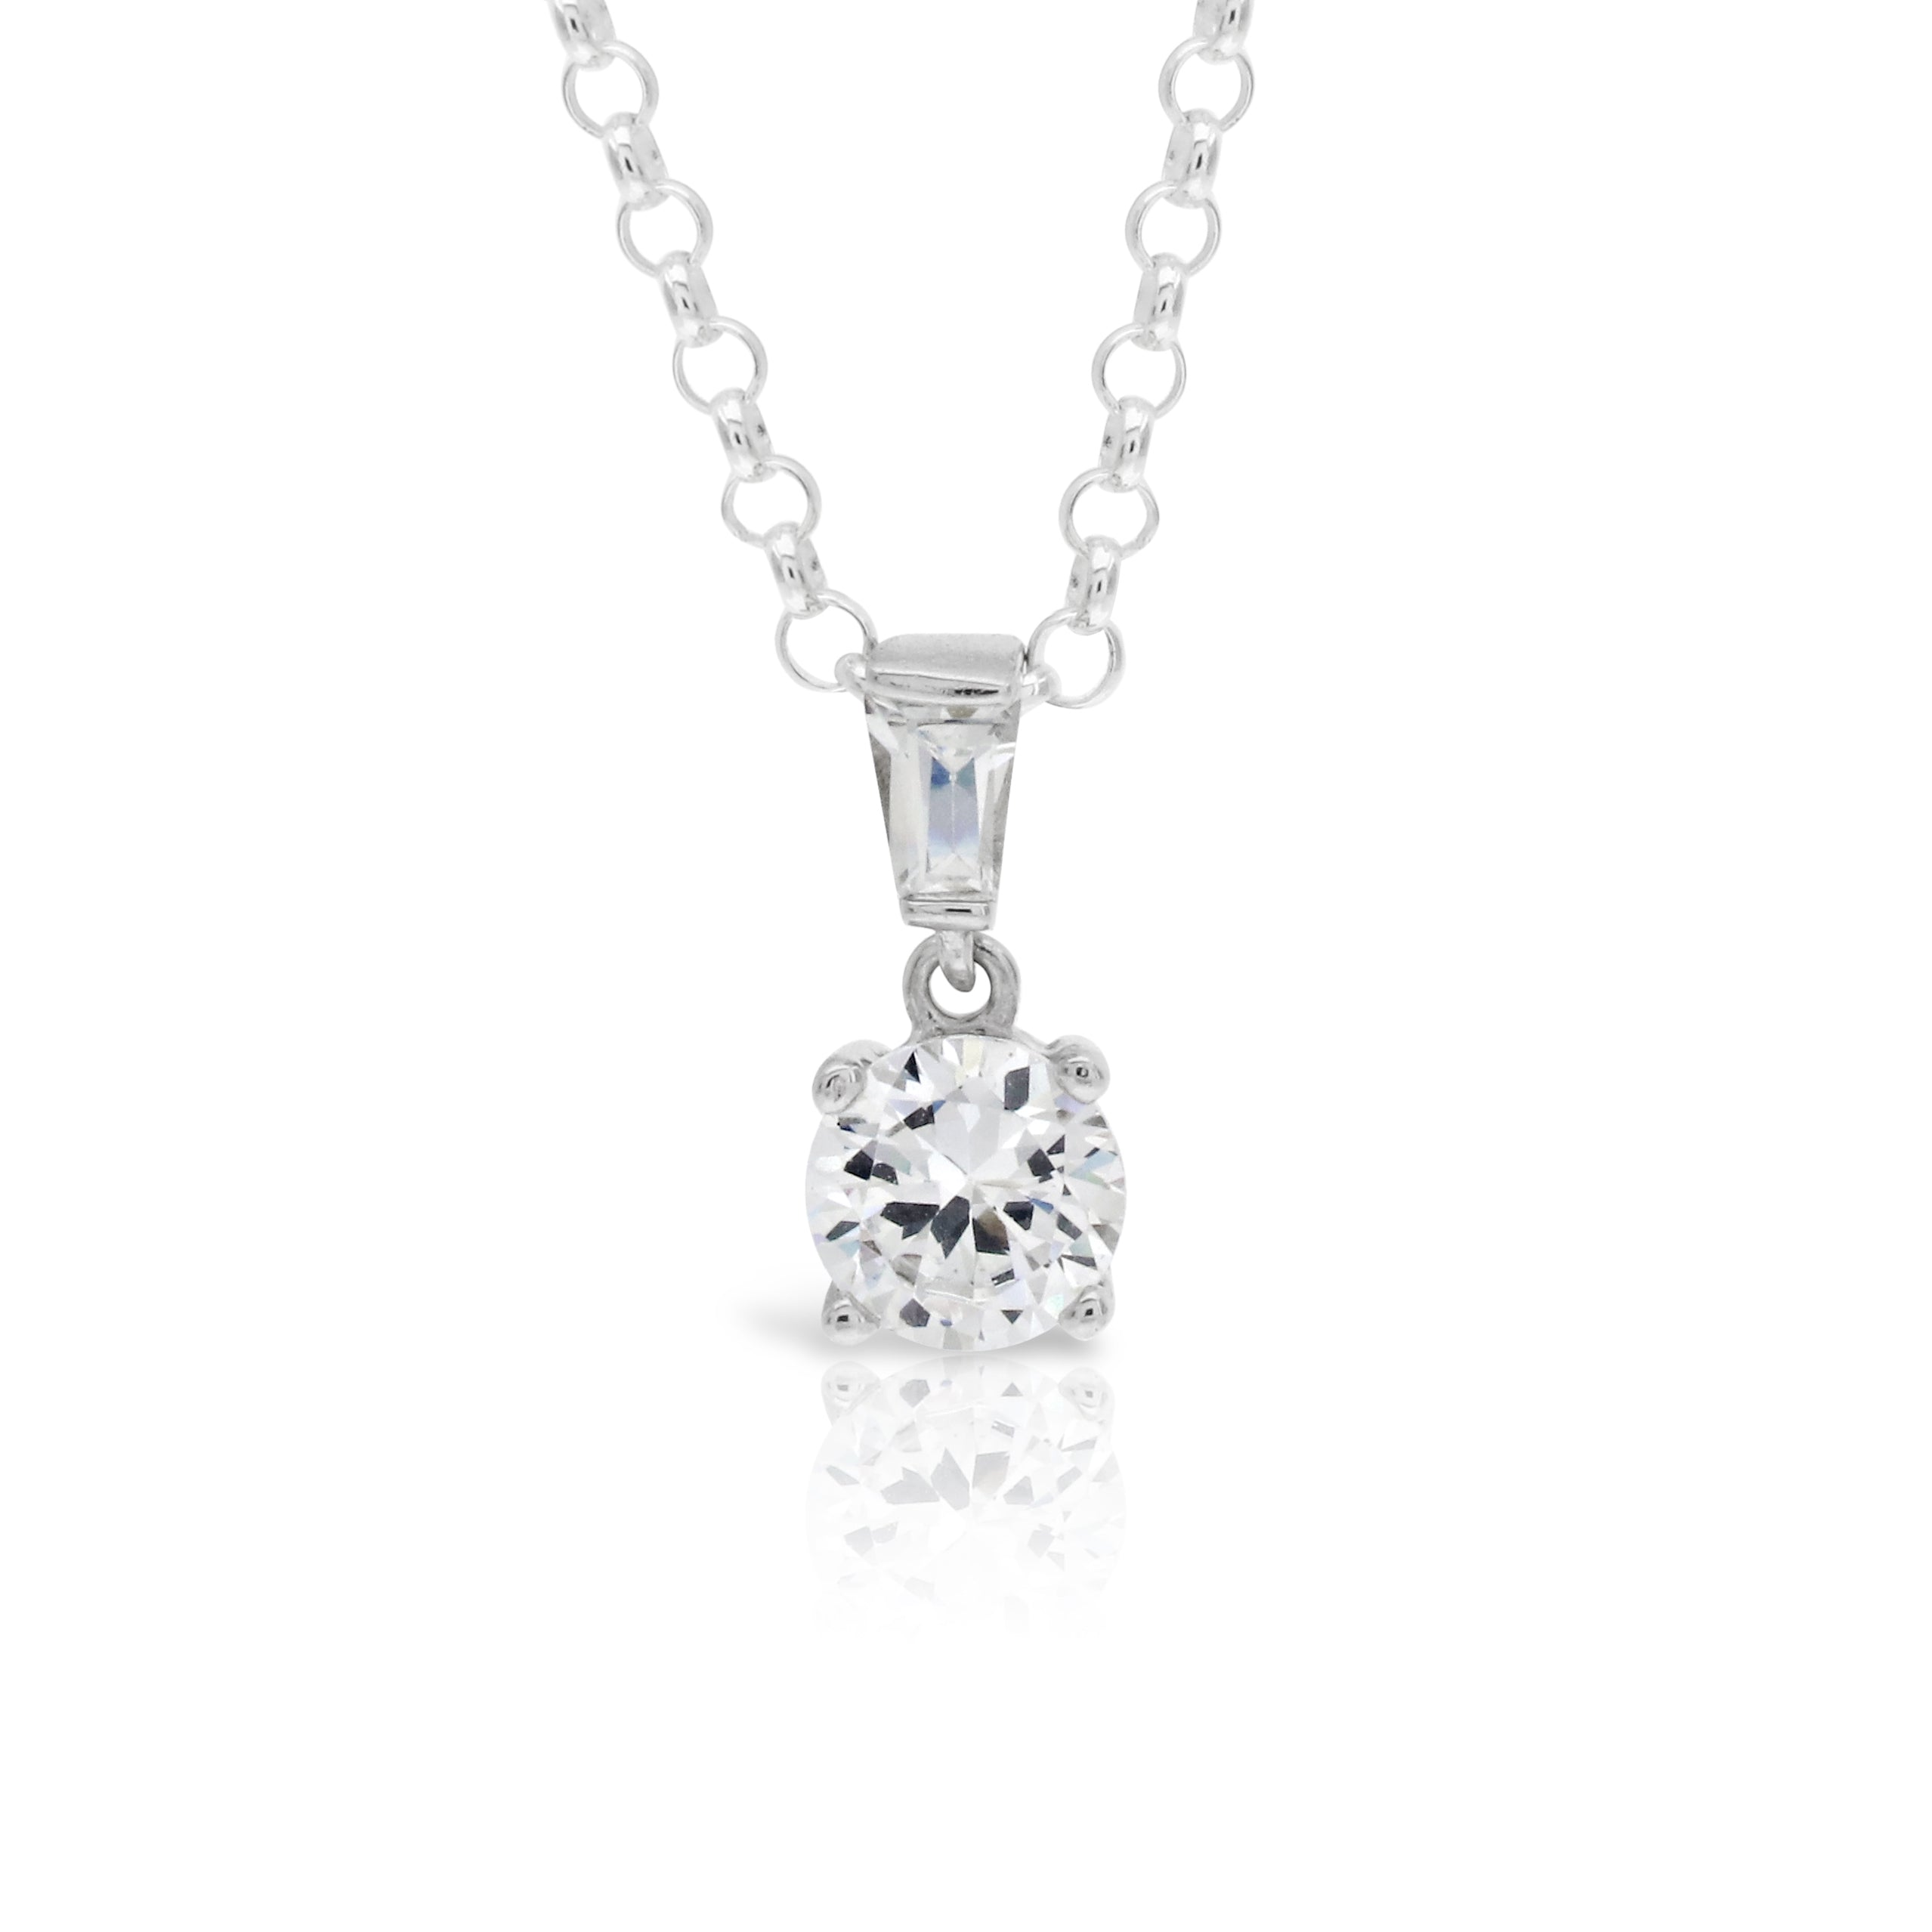 pendant mizrahi diamond platinum gia f solitaire diamonds products beverly hills